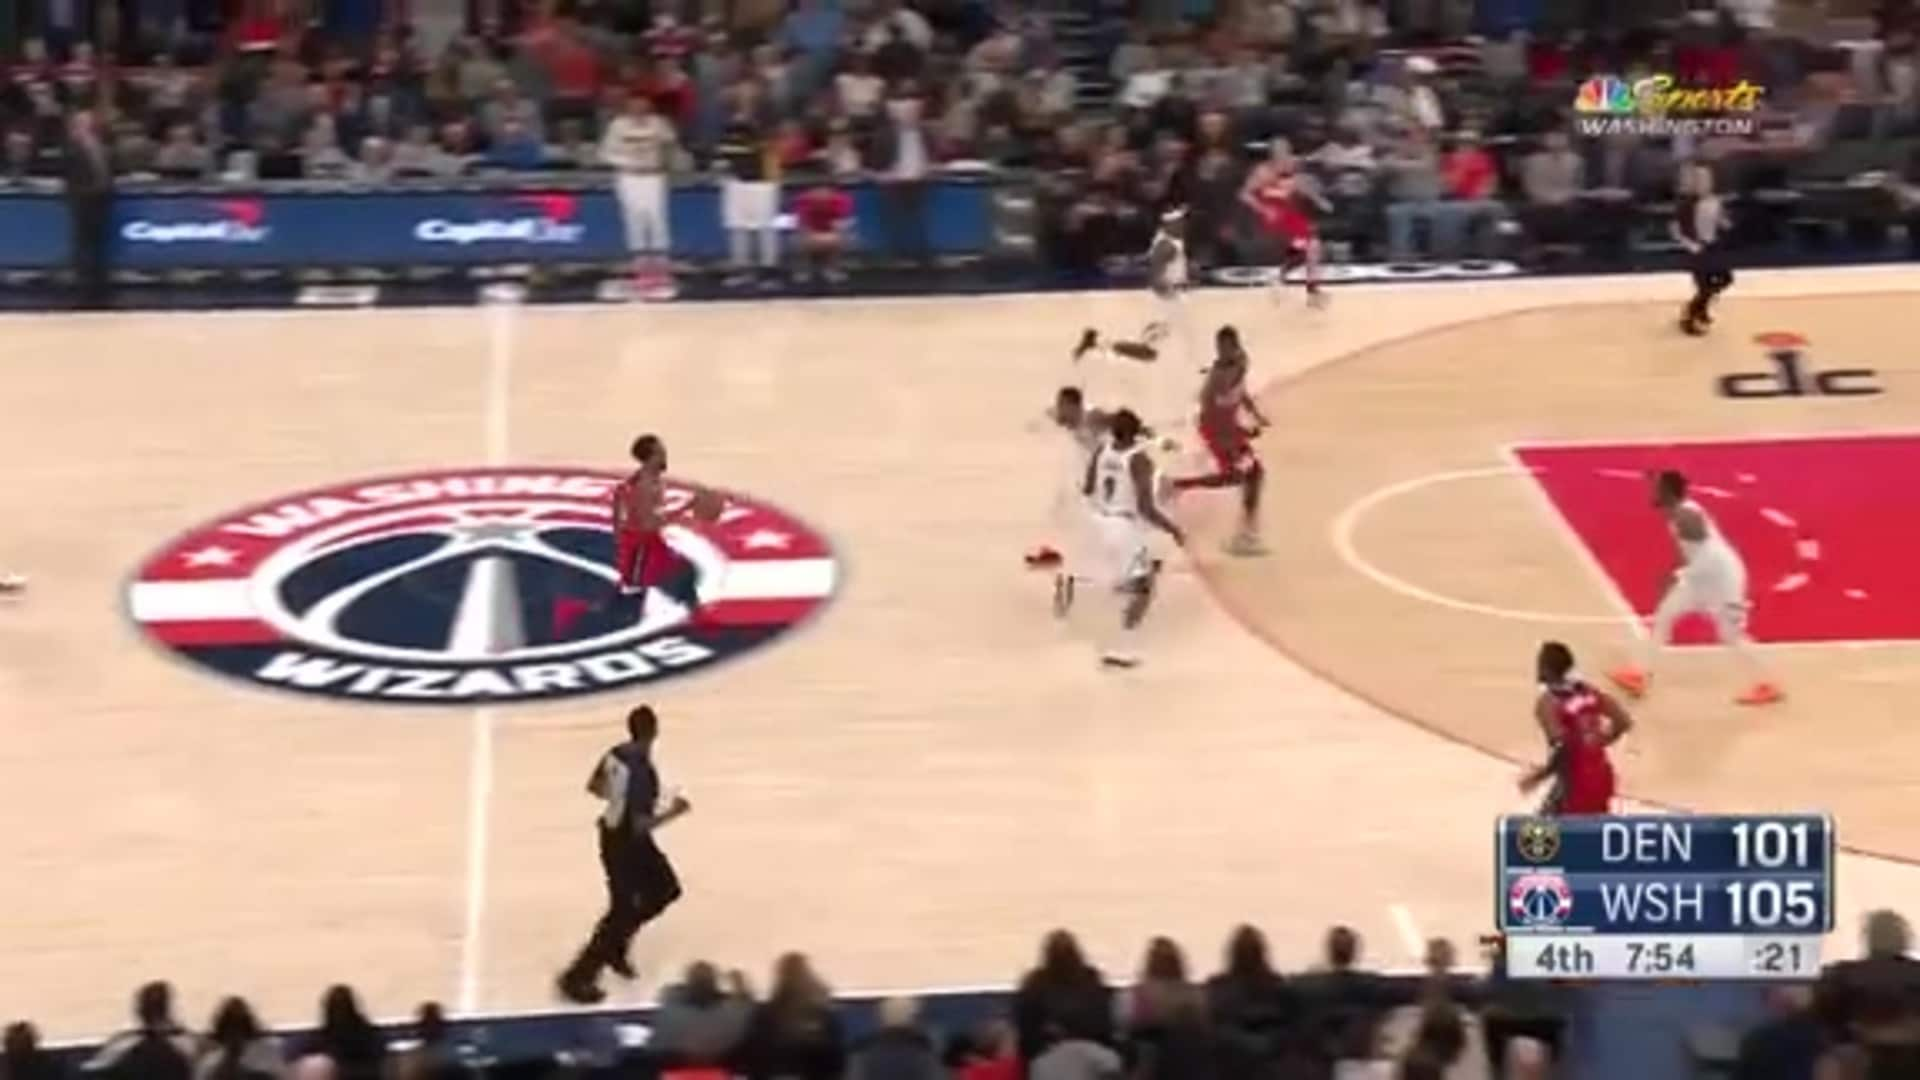 Highlights: Wizards vs. Nuggets - 1/4/20